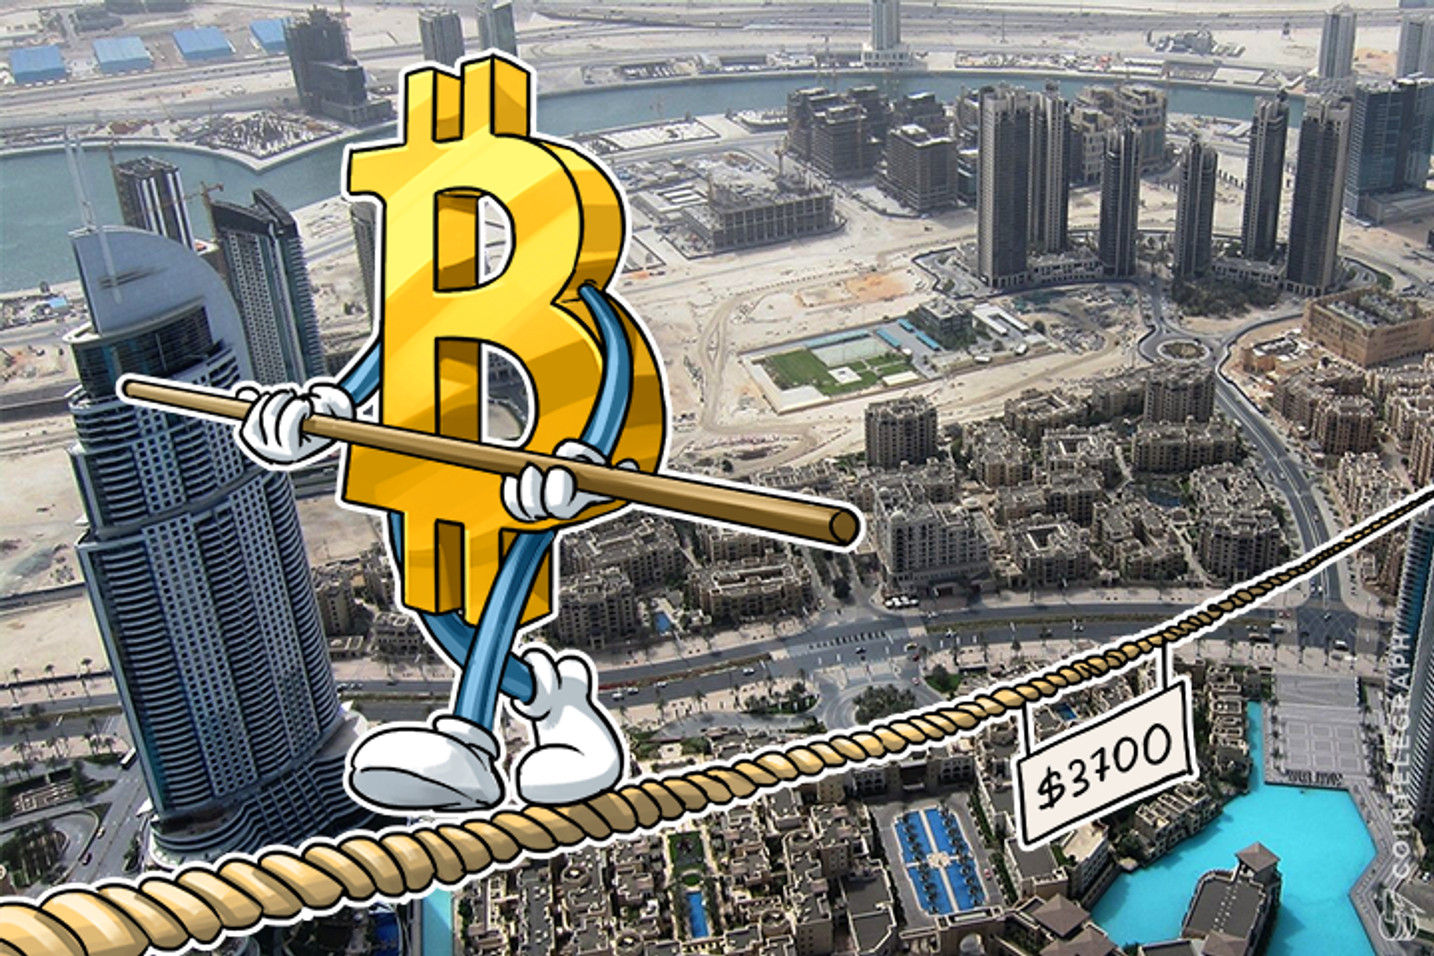 Bitcoin Briefly Crosses $3800, Shows Stability and Potential